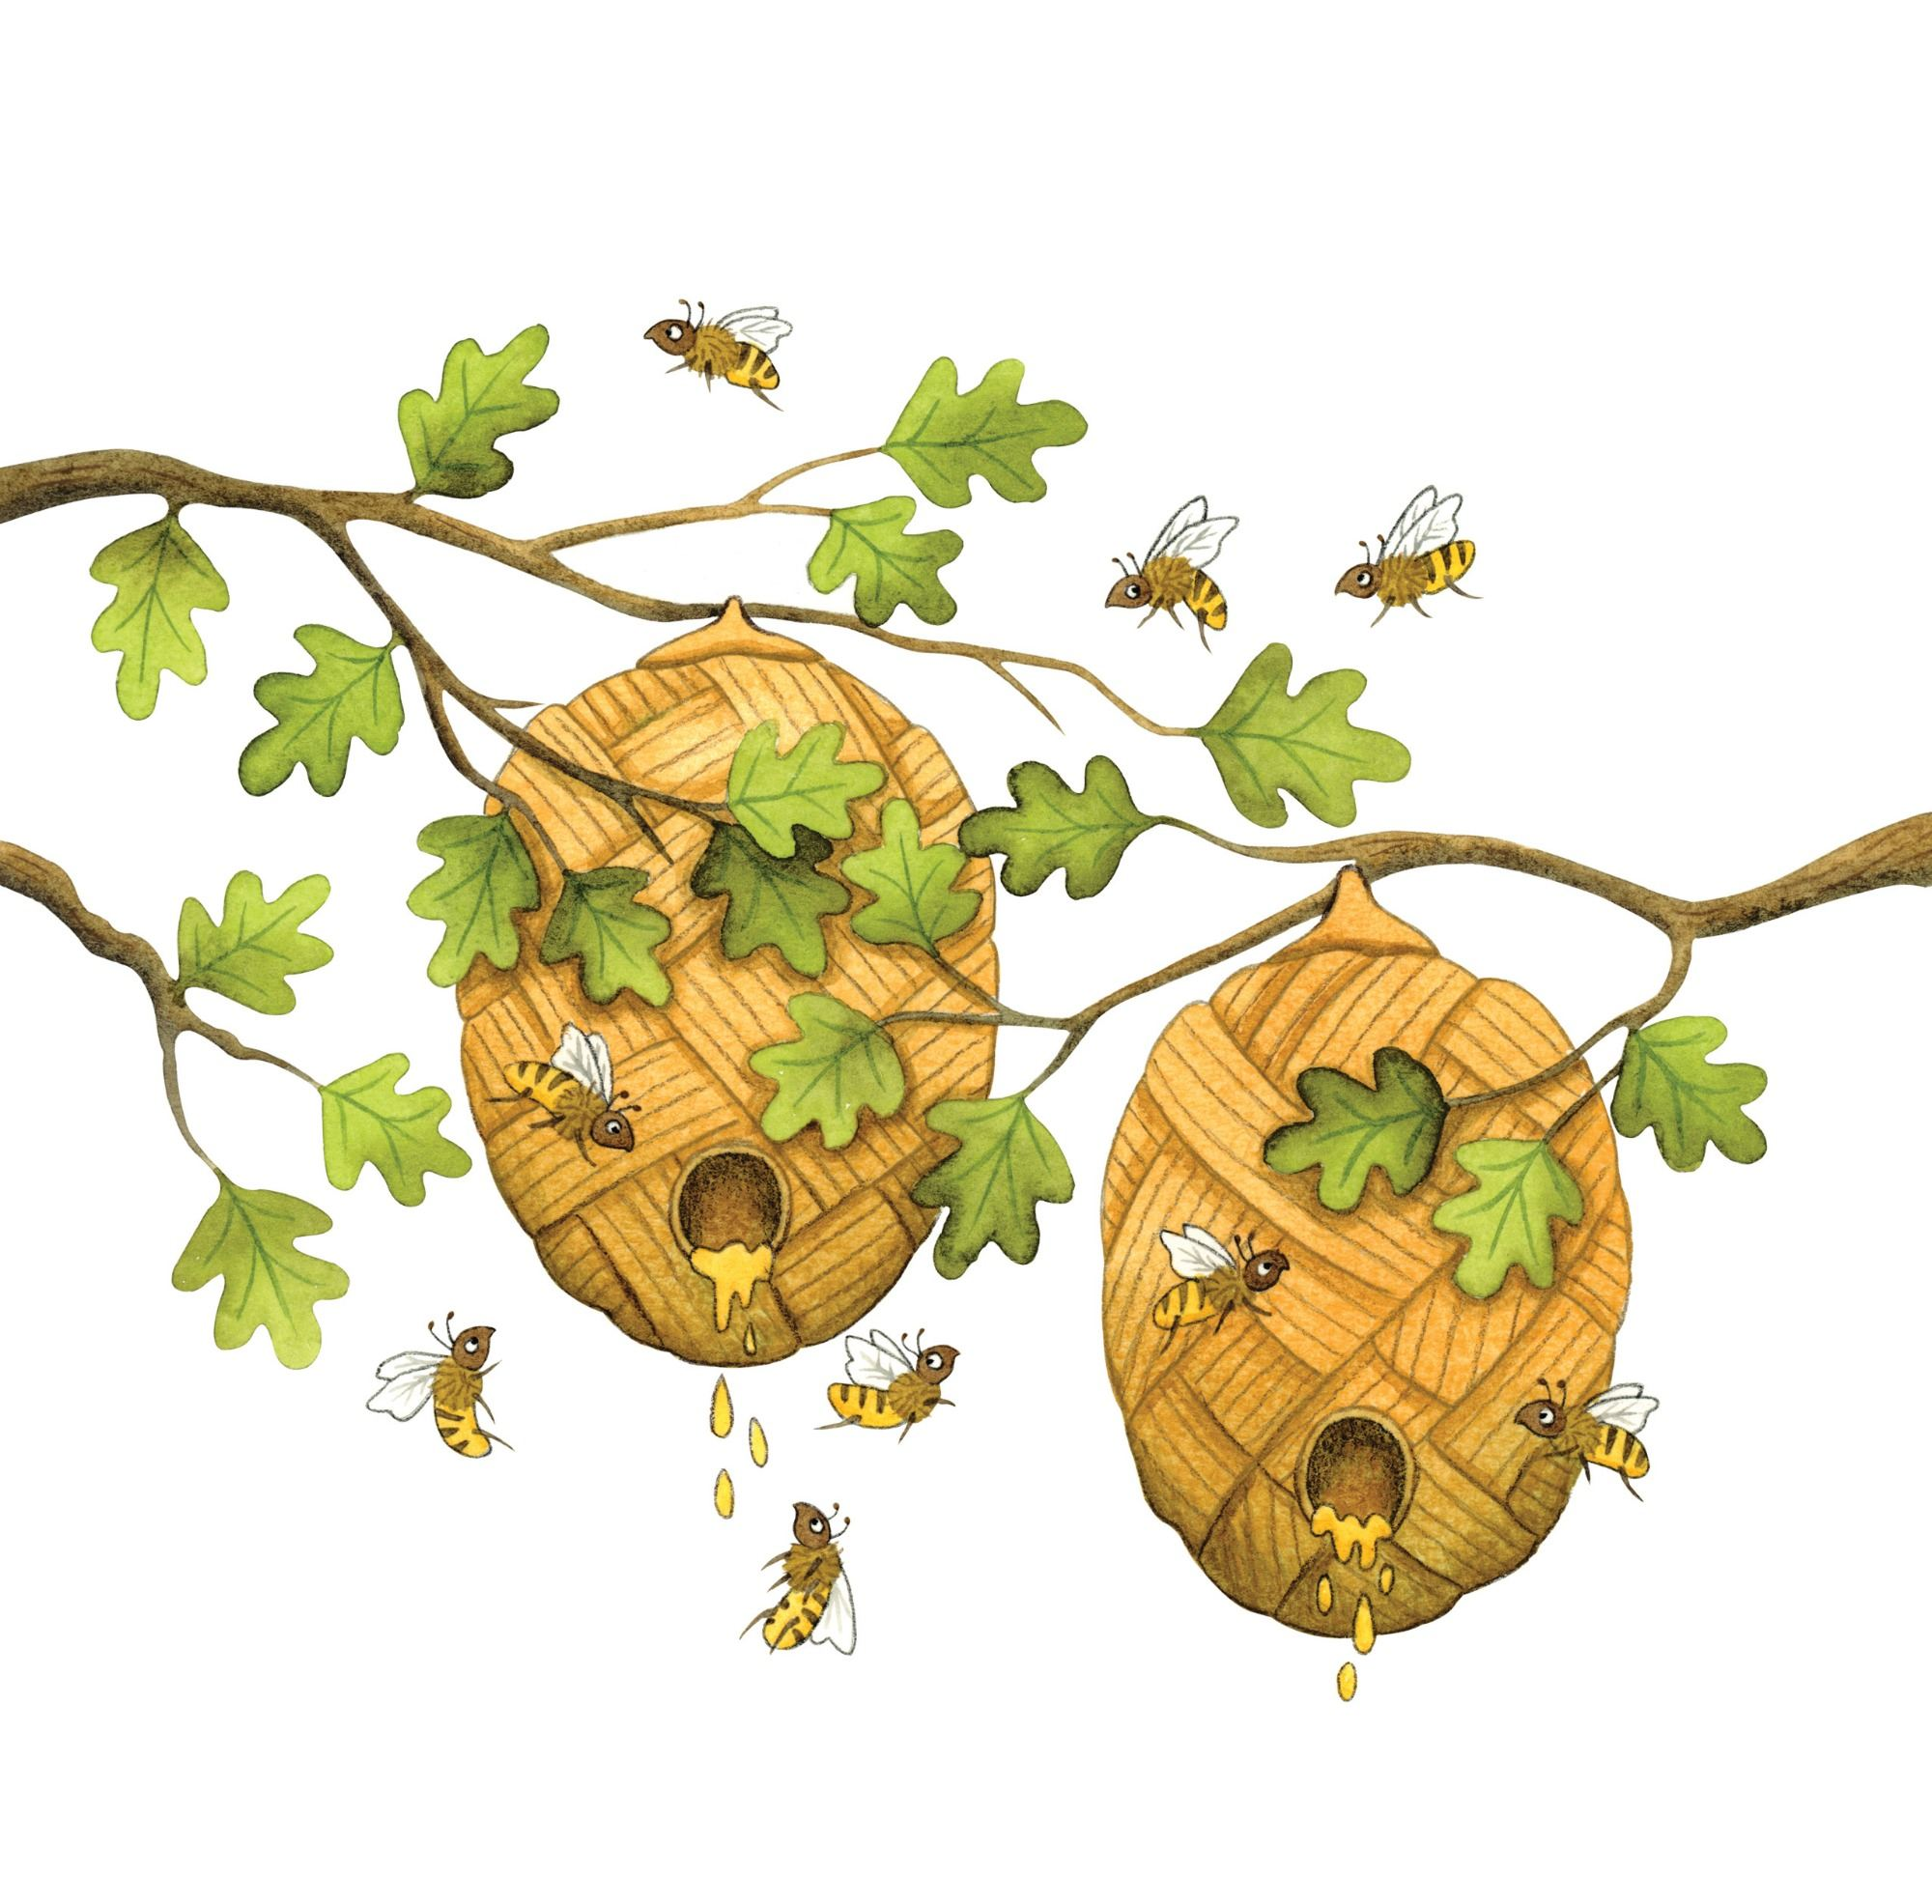 Honey bees illustration